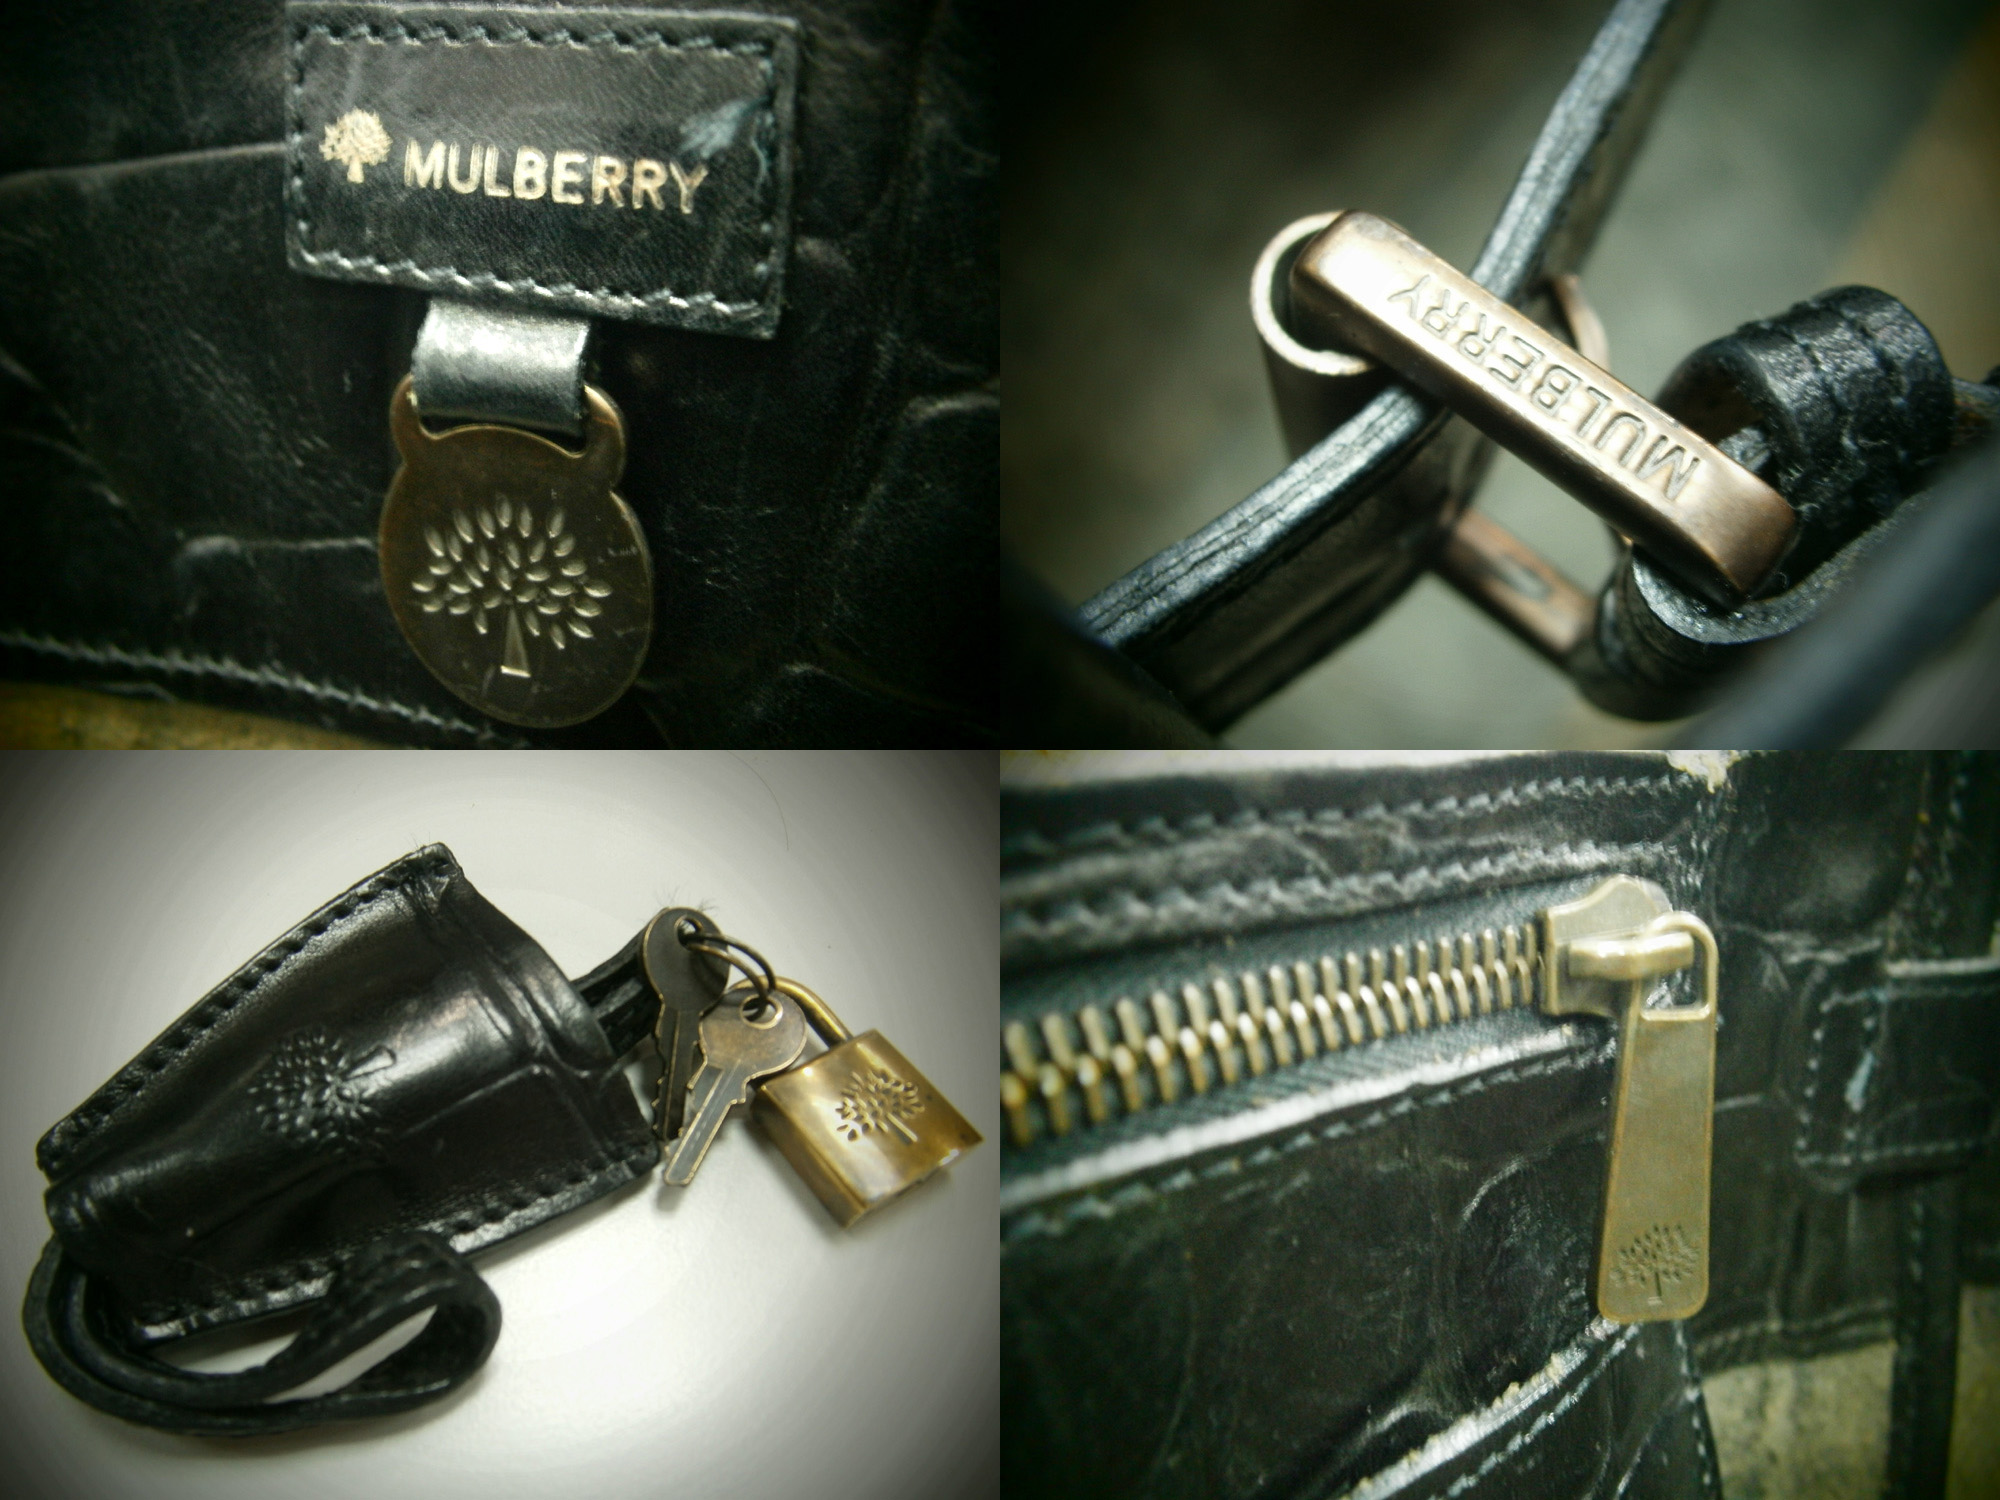 1ddbc1c572a Mulberry Bayswater in Congo Leather - leather tag, buckles, clochette, lock,  zipper